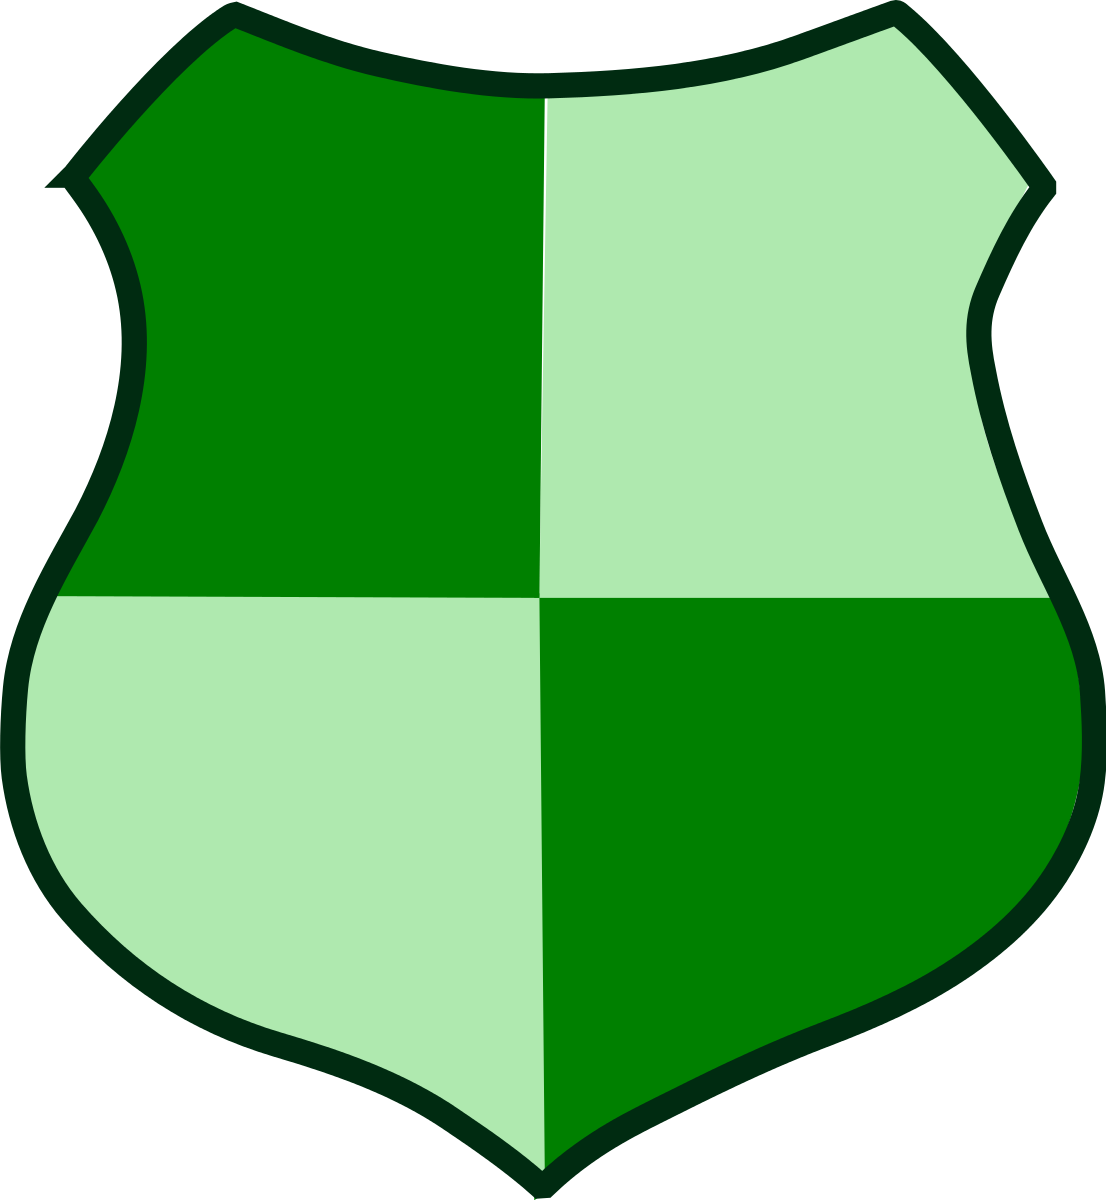 Clipart sword round. Image of shield and